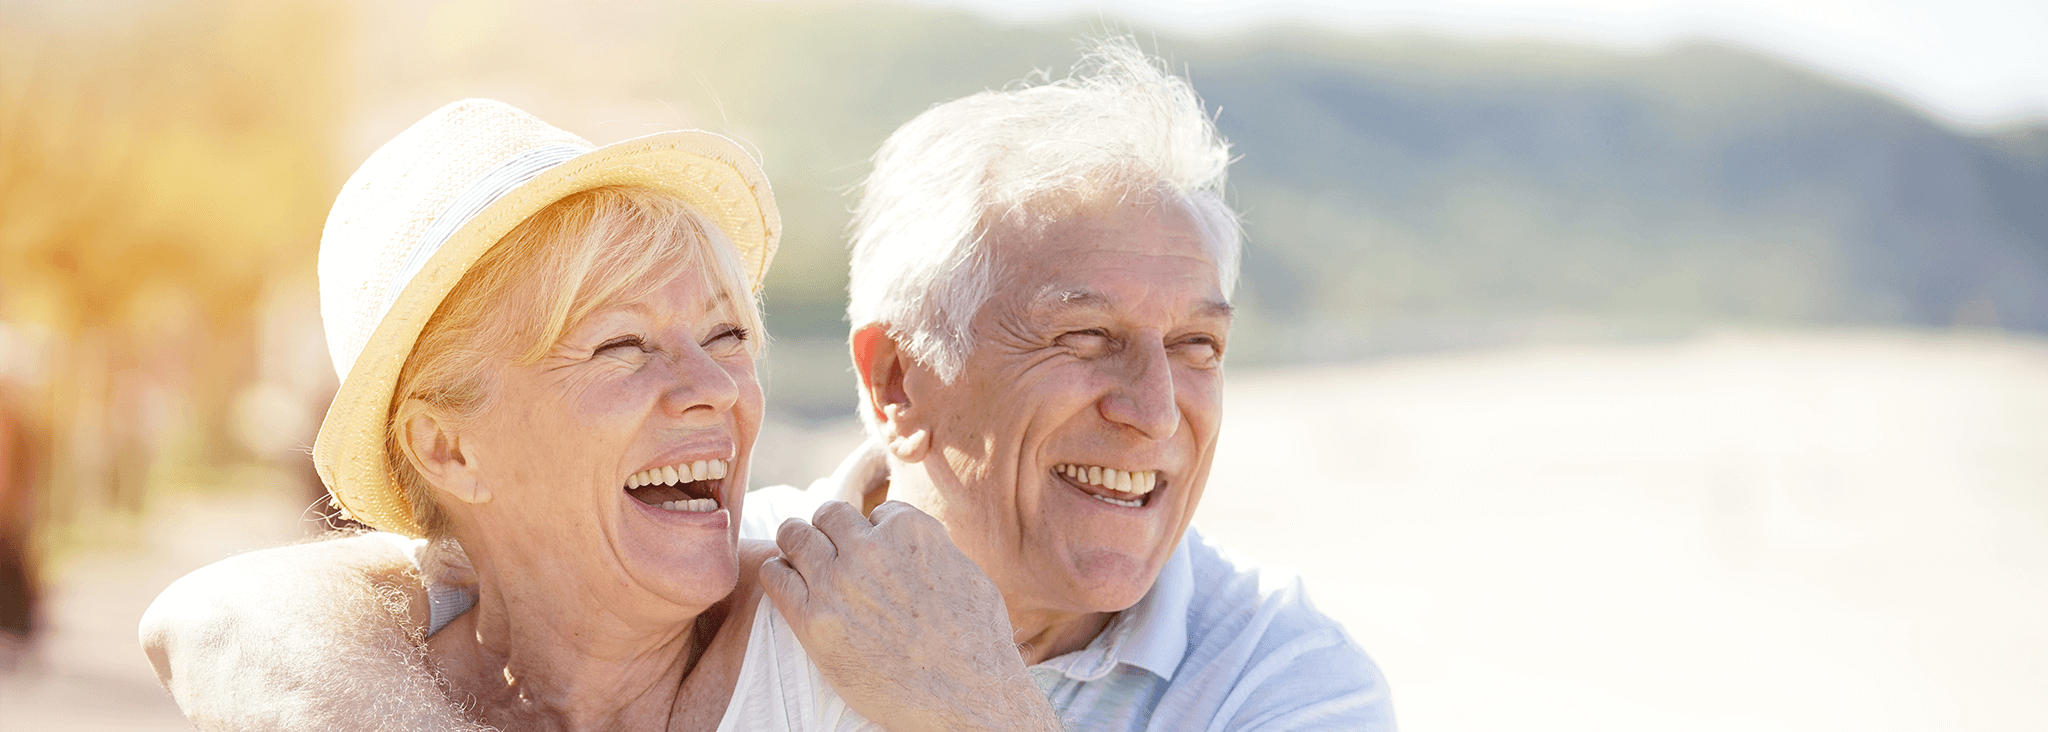 Saving towards retirement - Retirement couple on holiday - Retirement planning and pensions